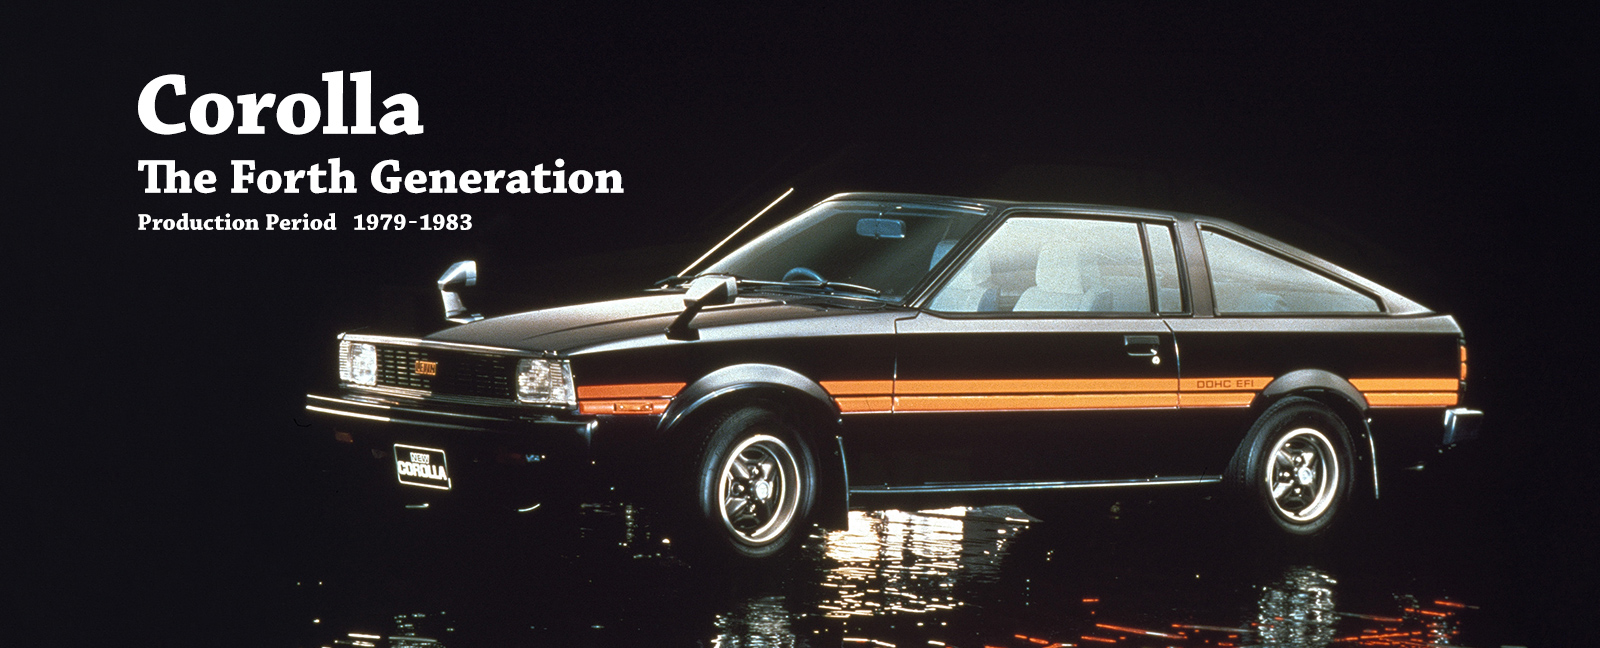 Vehicle Heritage, Corolla, The Fourth Generation